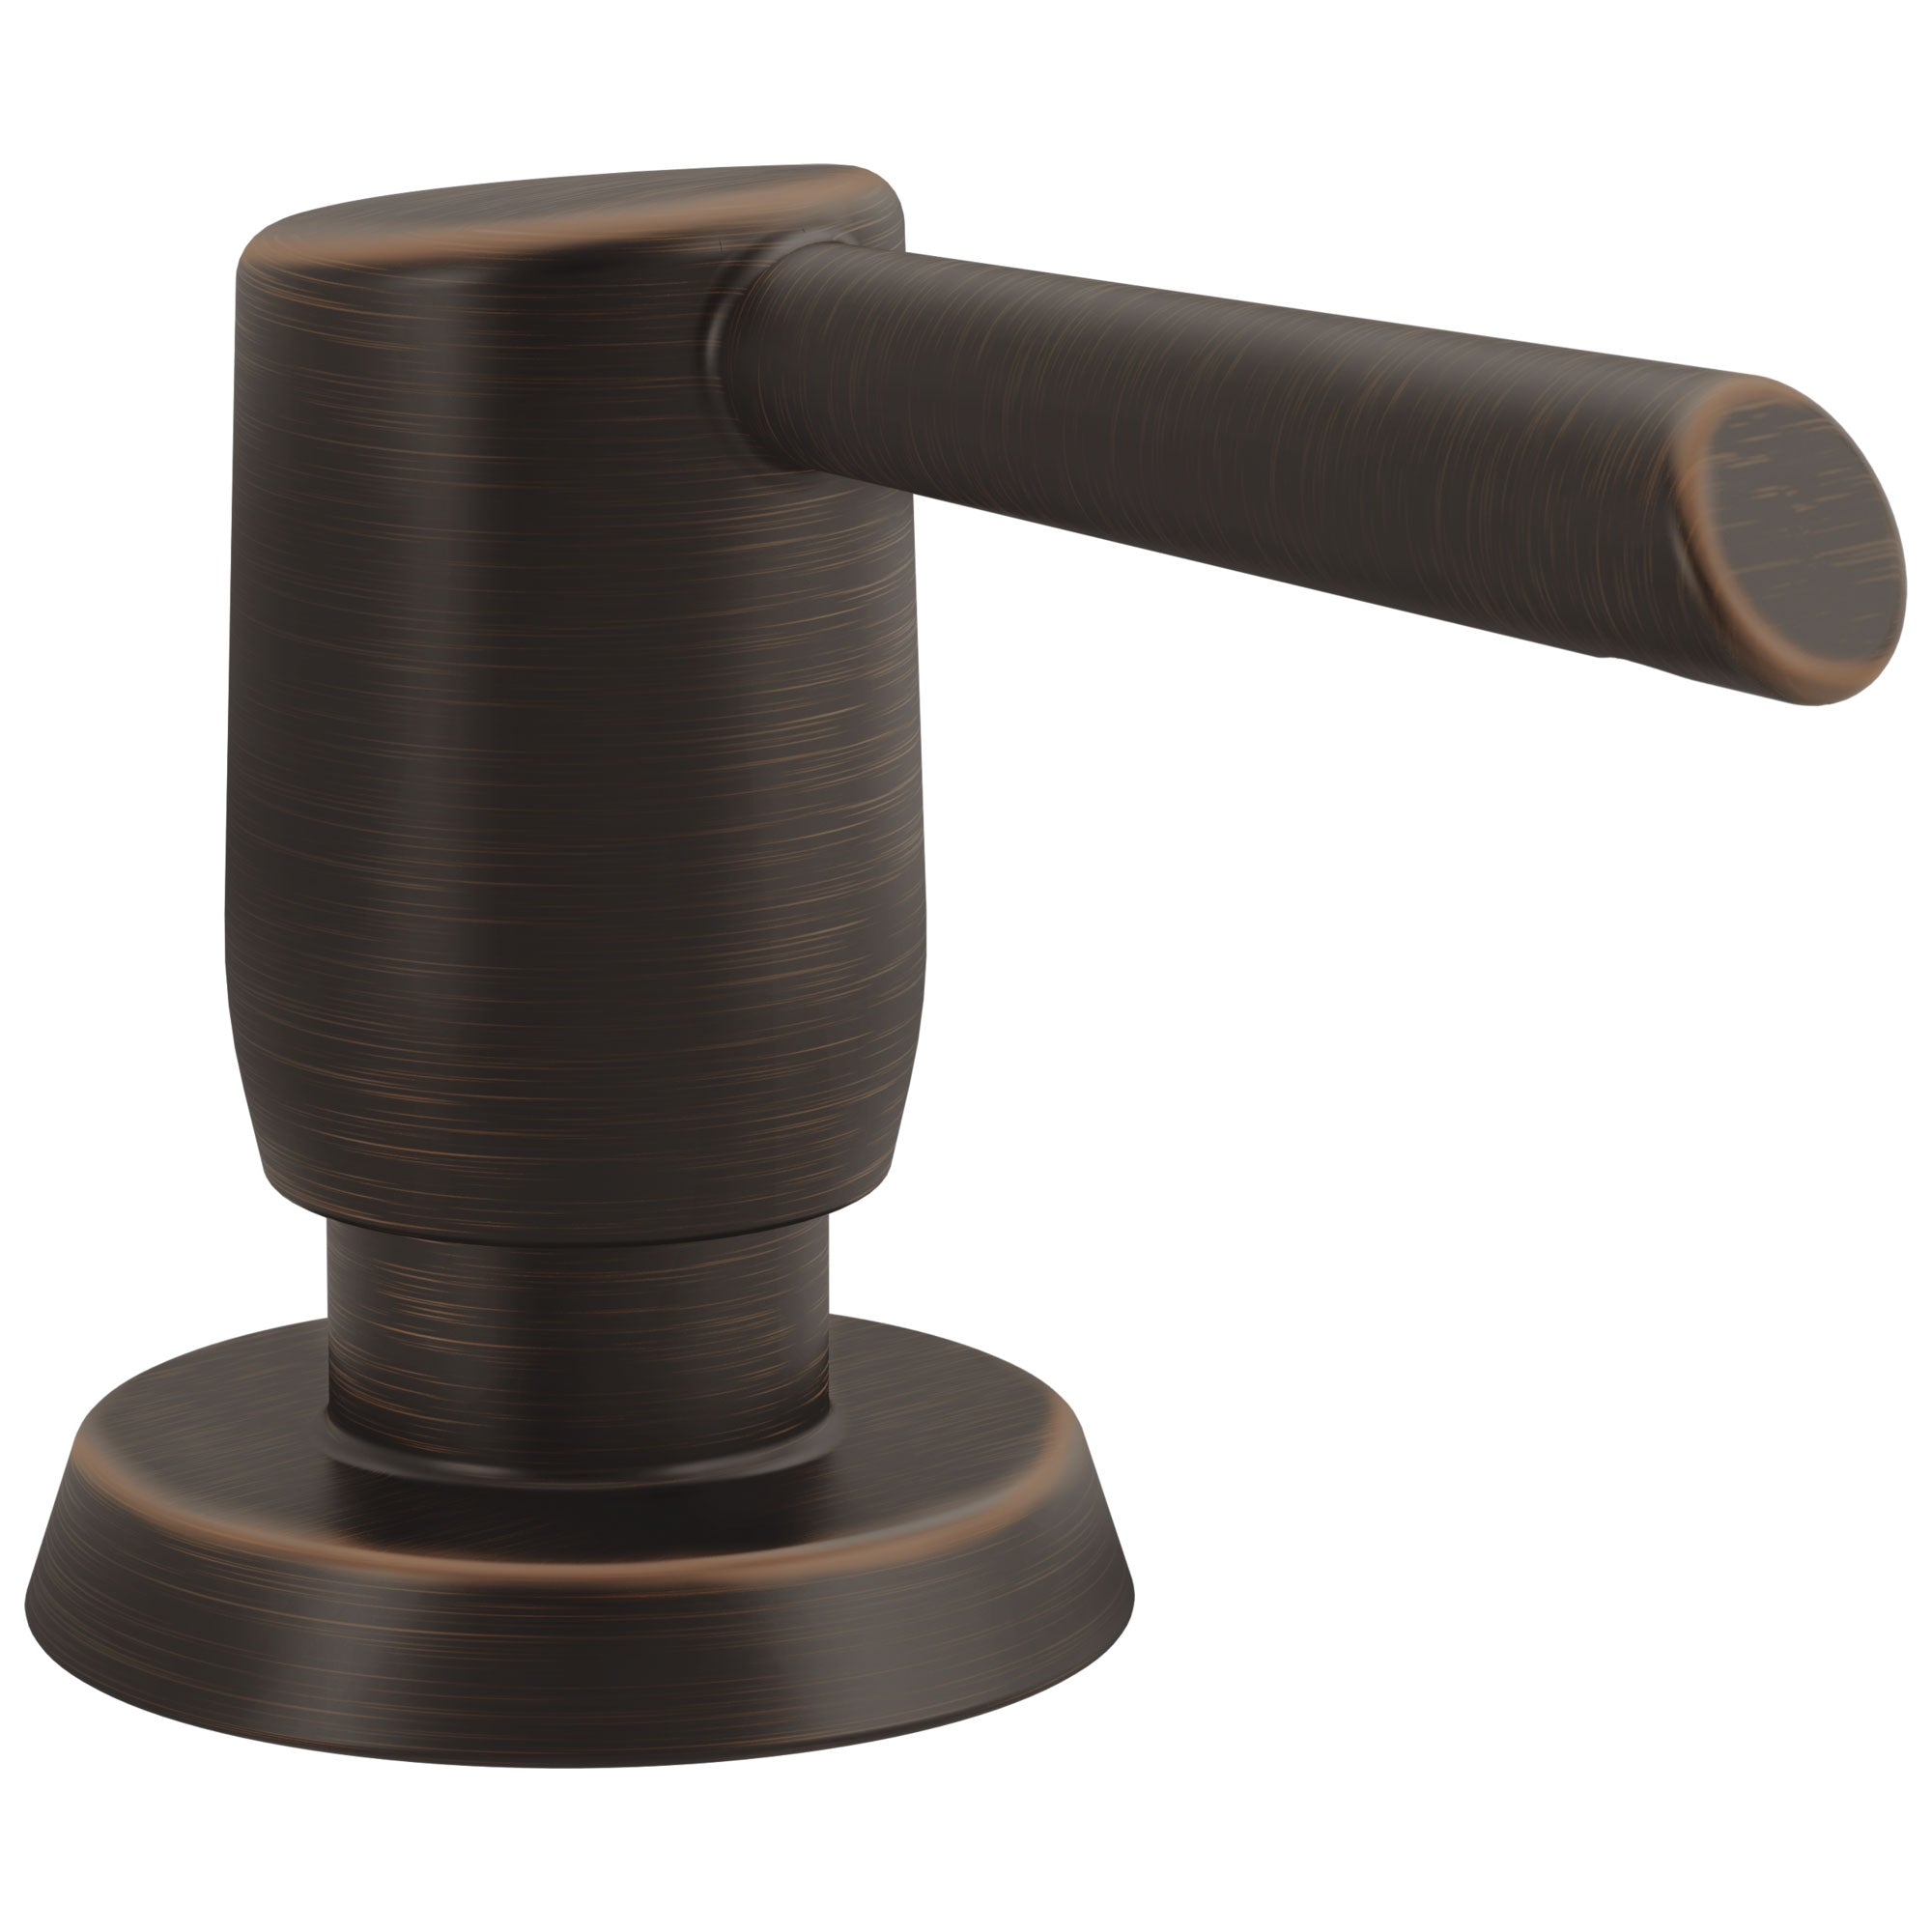 Delta Essa Venetian Bronze Finish Metal Soap Dispenser DRP100736RB